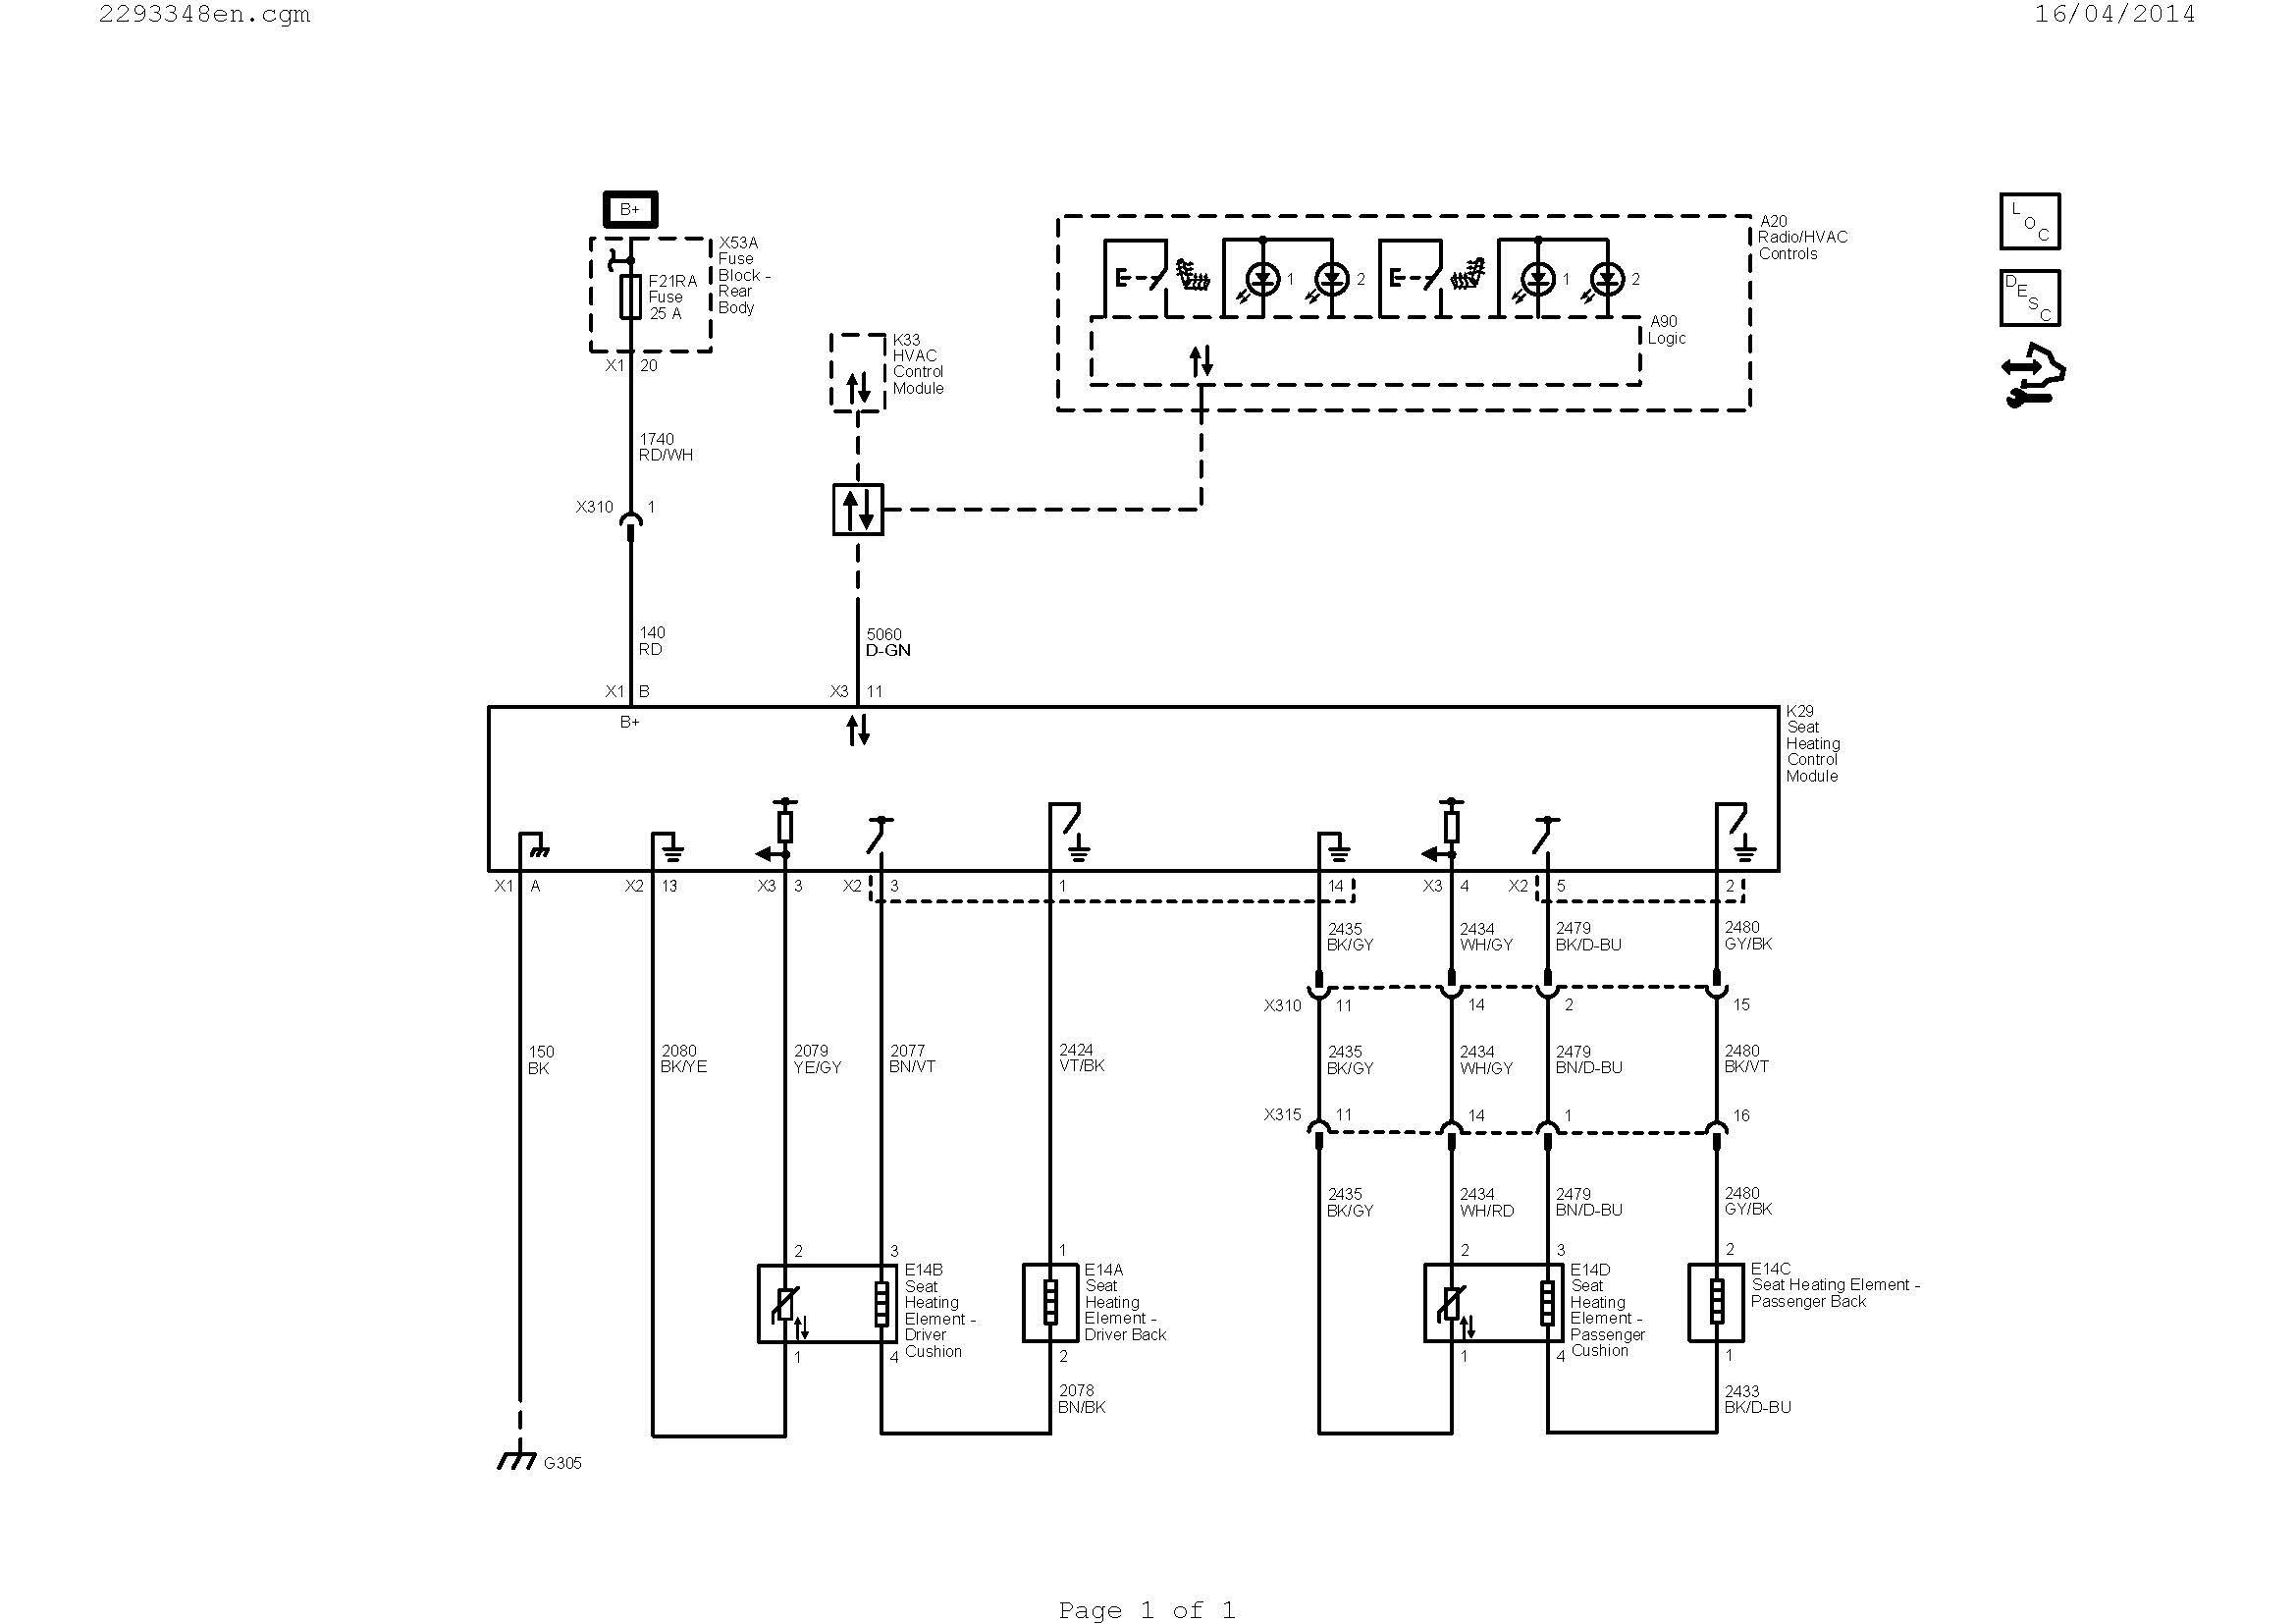 50 amp transfer switch wiring diagram Download-Wiring Diagram For Changeover Relay Inspirationa Wiring Diagram Ac Valid Hvac Diagram Best Hvac Diagram 0d – Wire 16-f